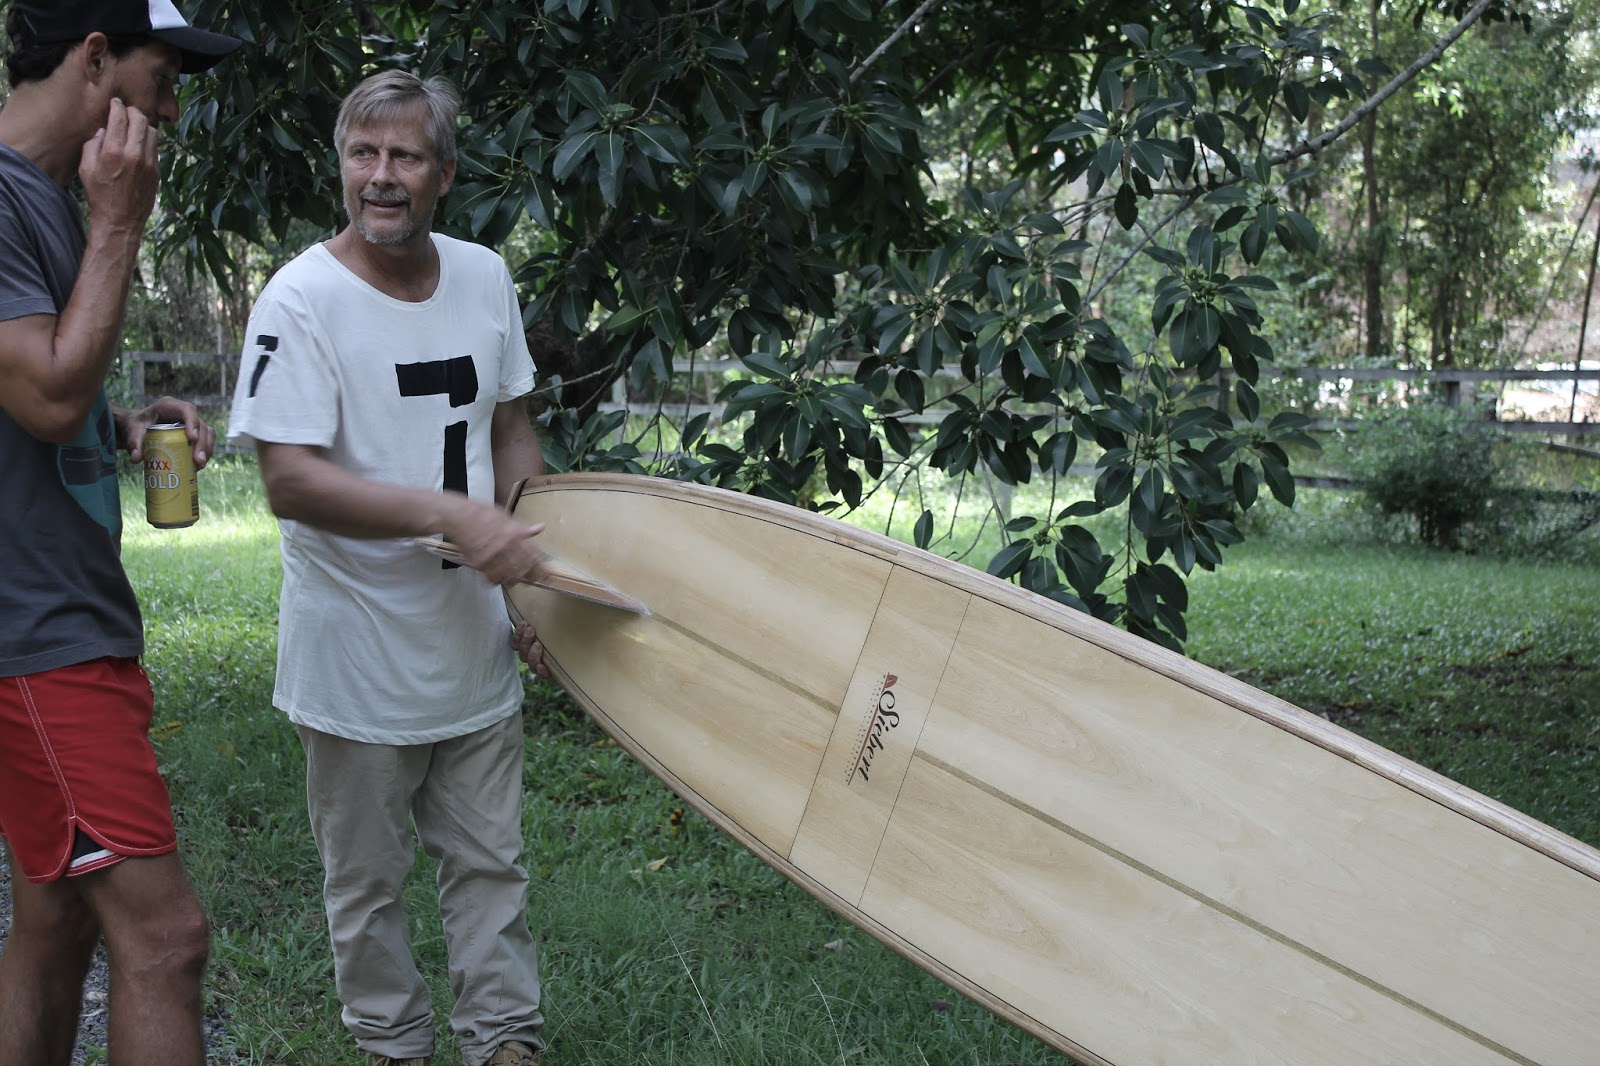 16-03-2016-australia-siebert-surfboards-03